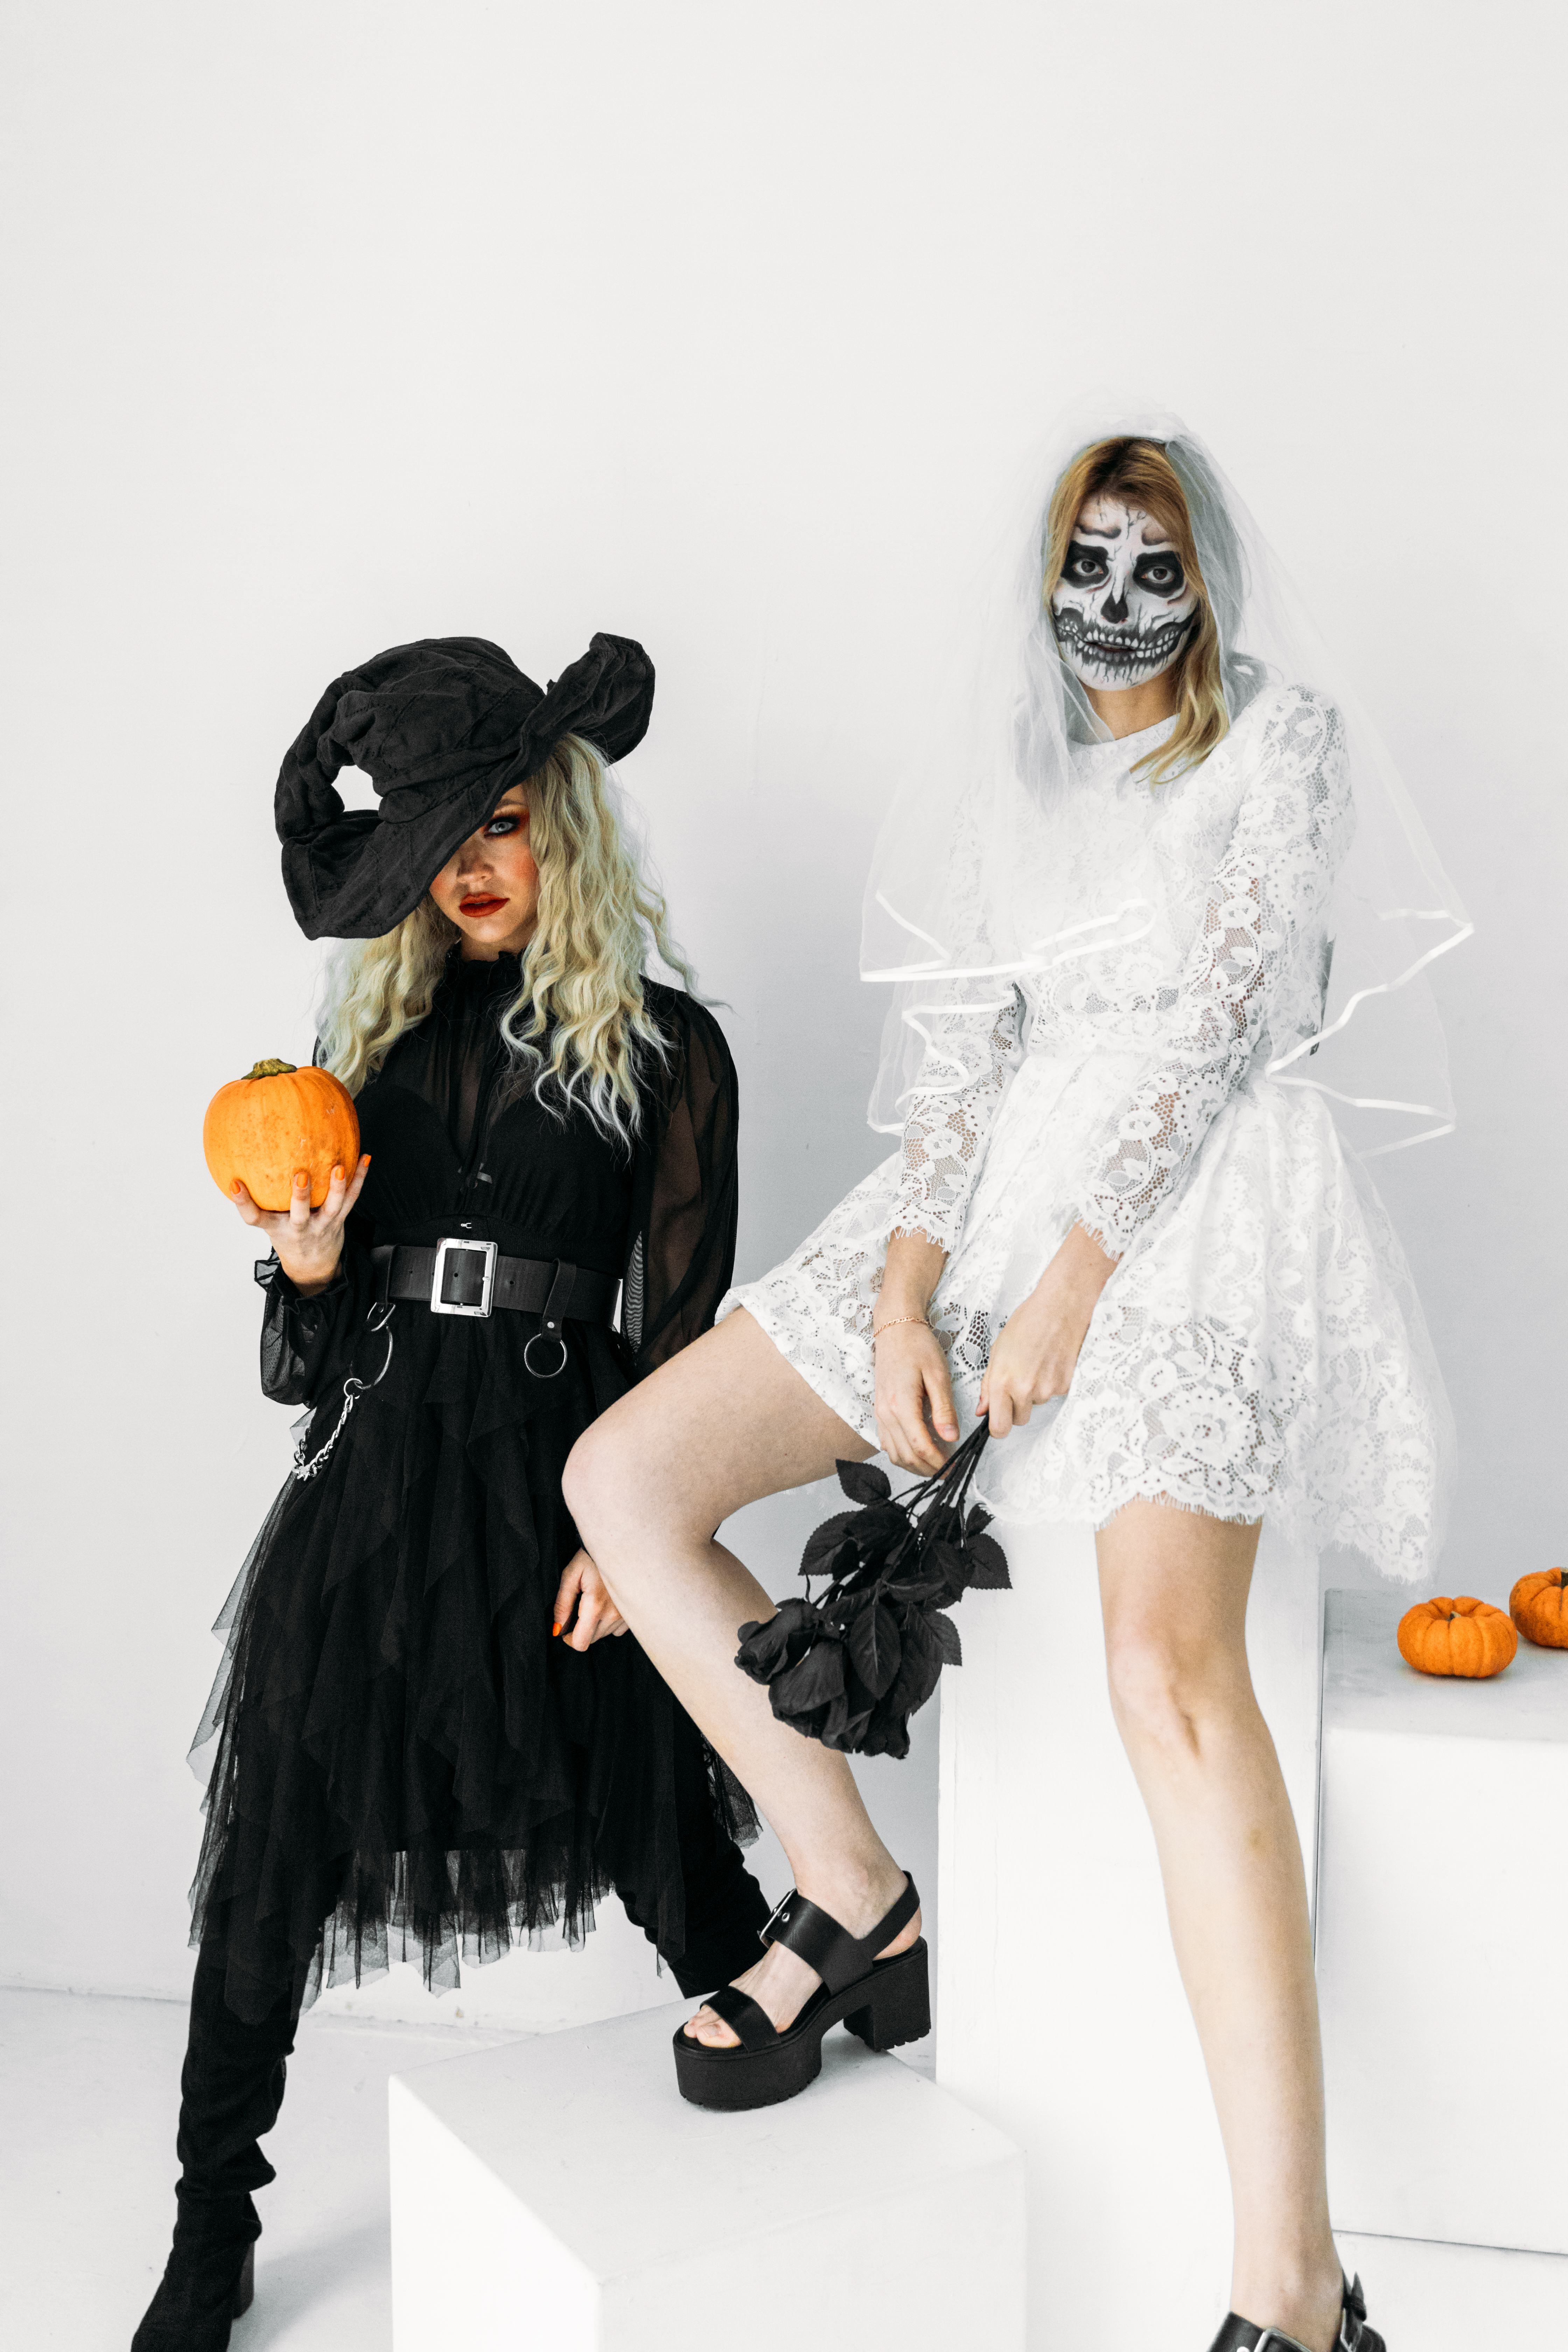 Halloween Costumes For Two Women.Two Women With Different Halloween Costumes Free Stock Photo